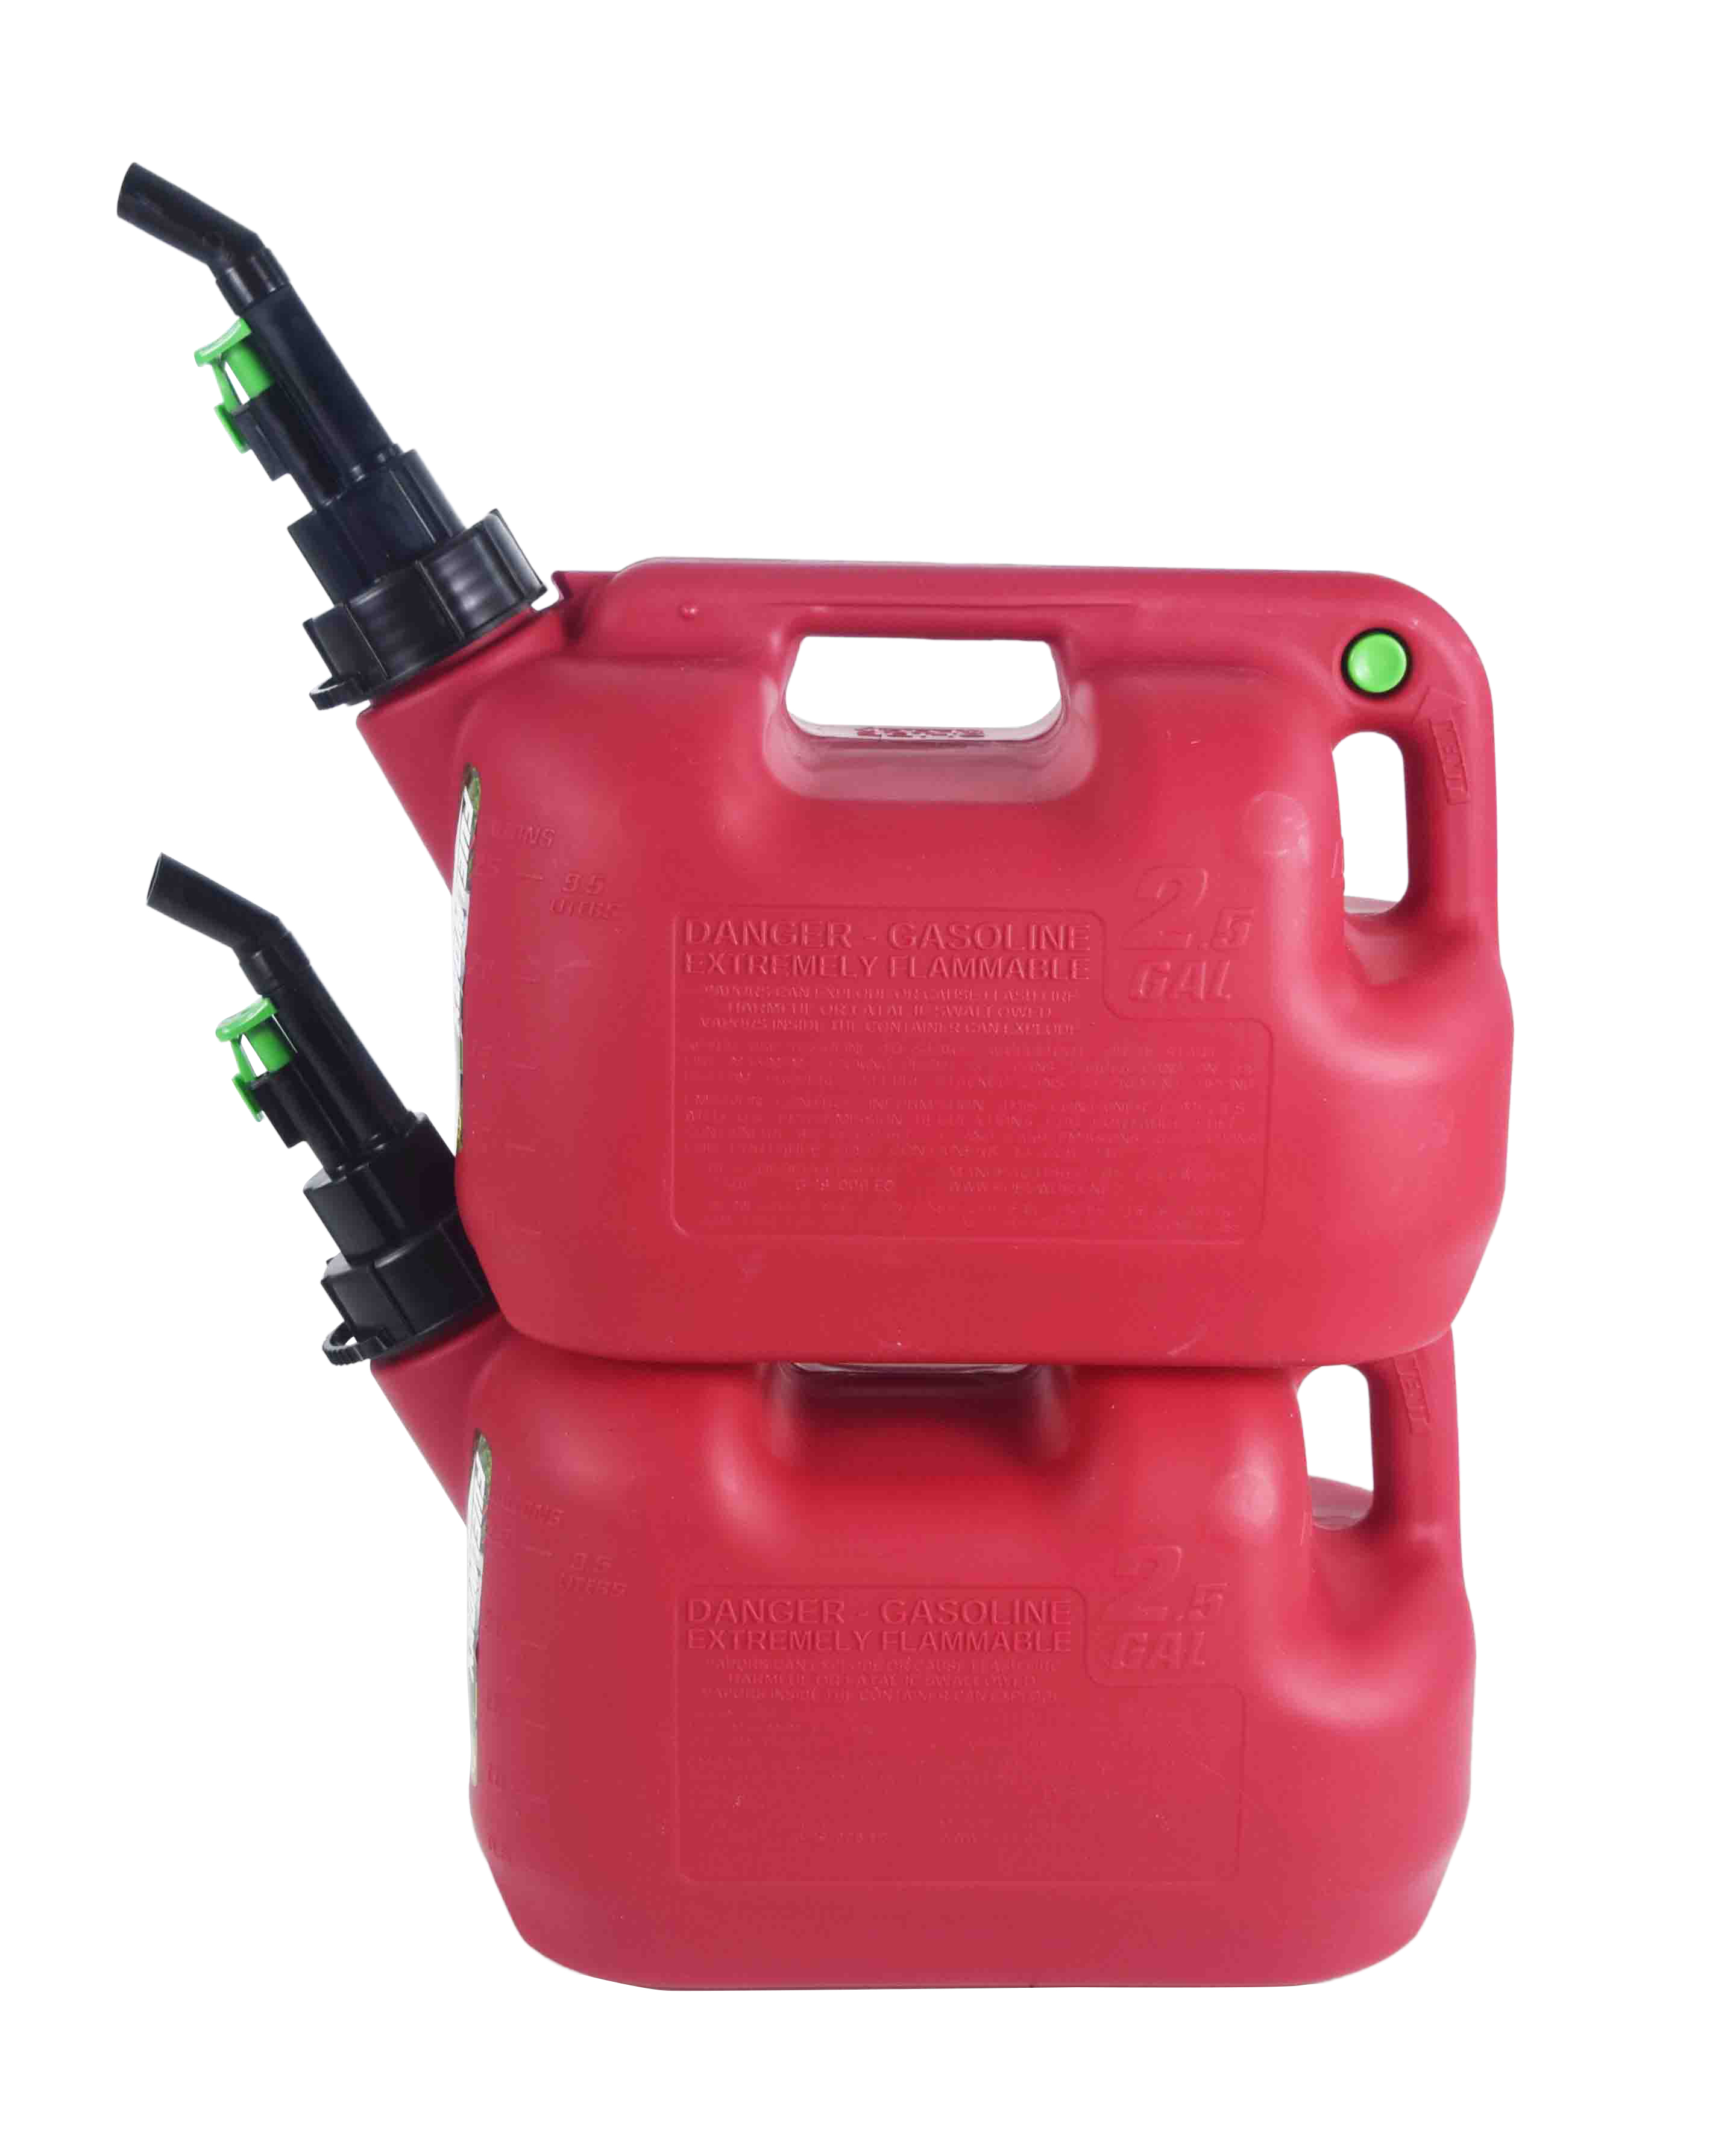 Fuelworx-Red-2.5-Gallon-Stackable-Fast-Pour-Gas-Fuel-Cans-CARB-Compliant-Made-in-The-USA-2.5-Gallon-Gas-2-Pack-image-2